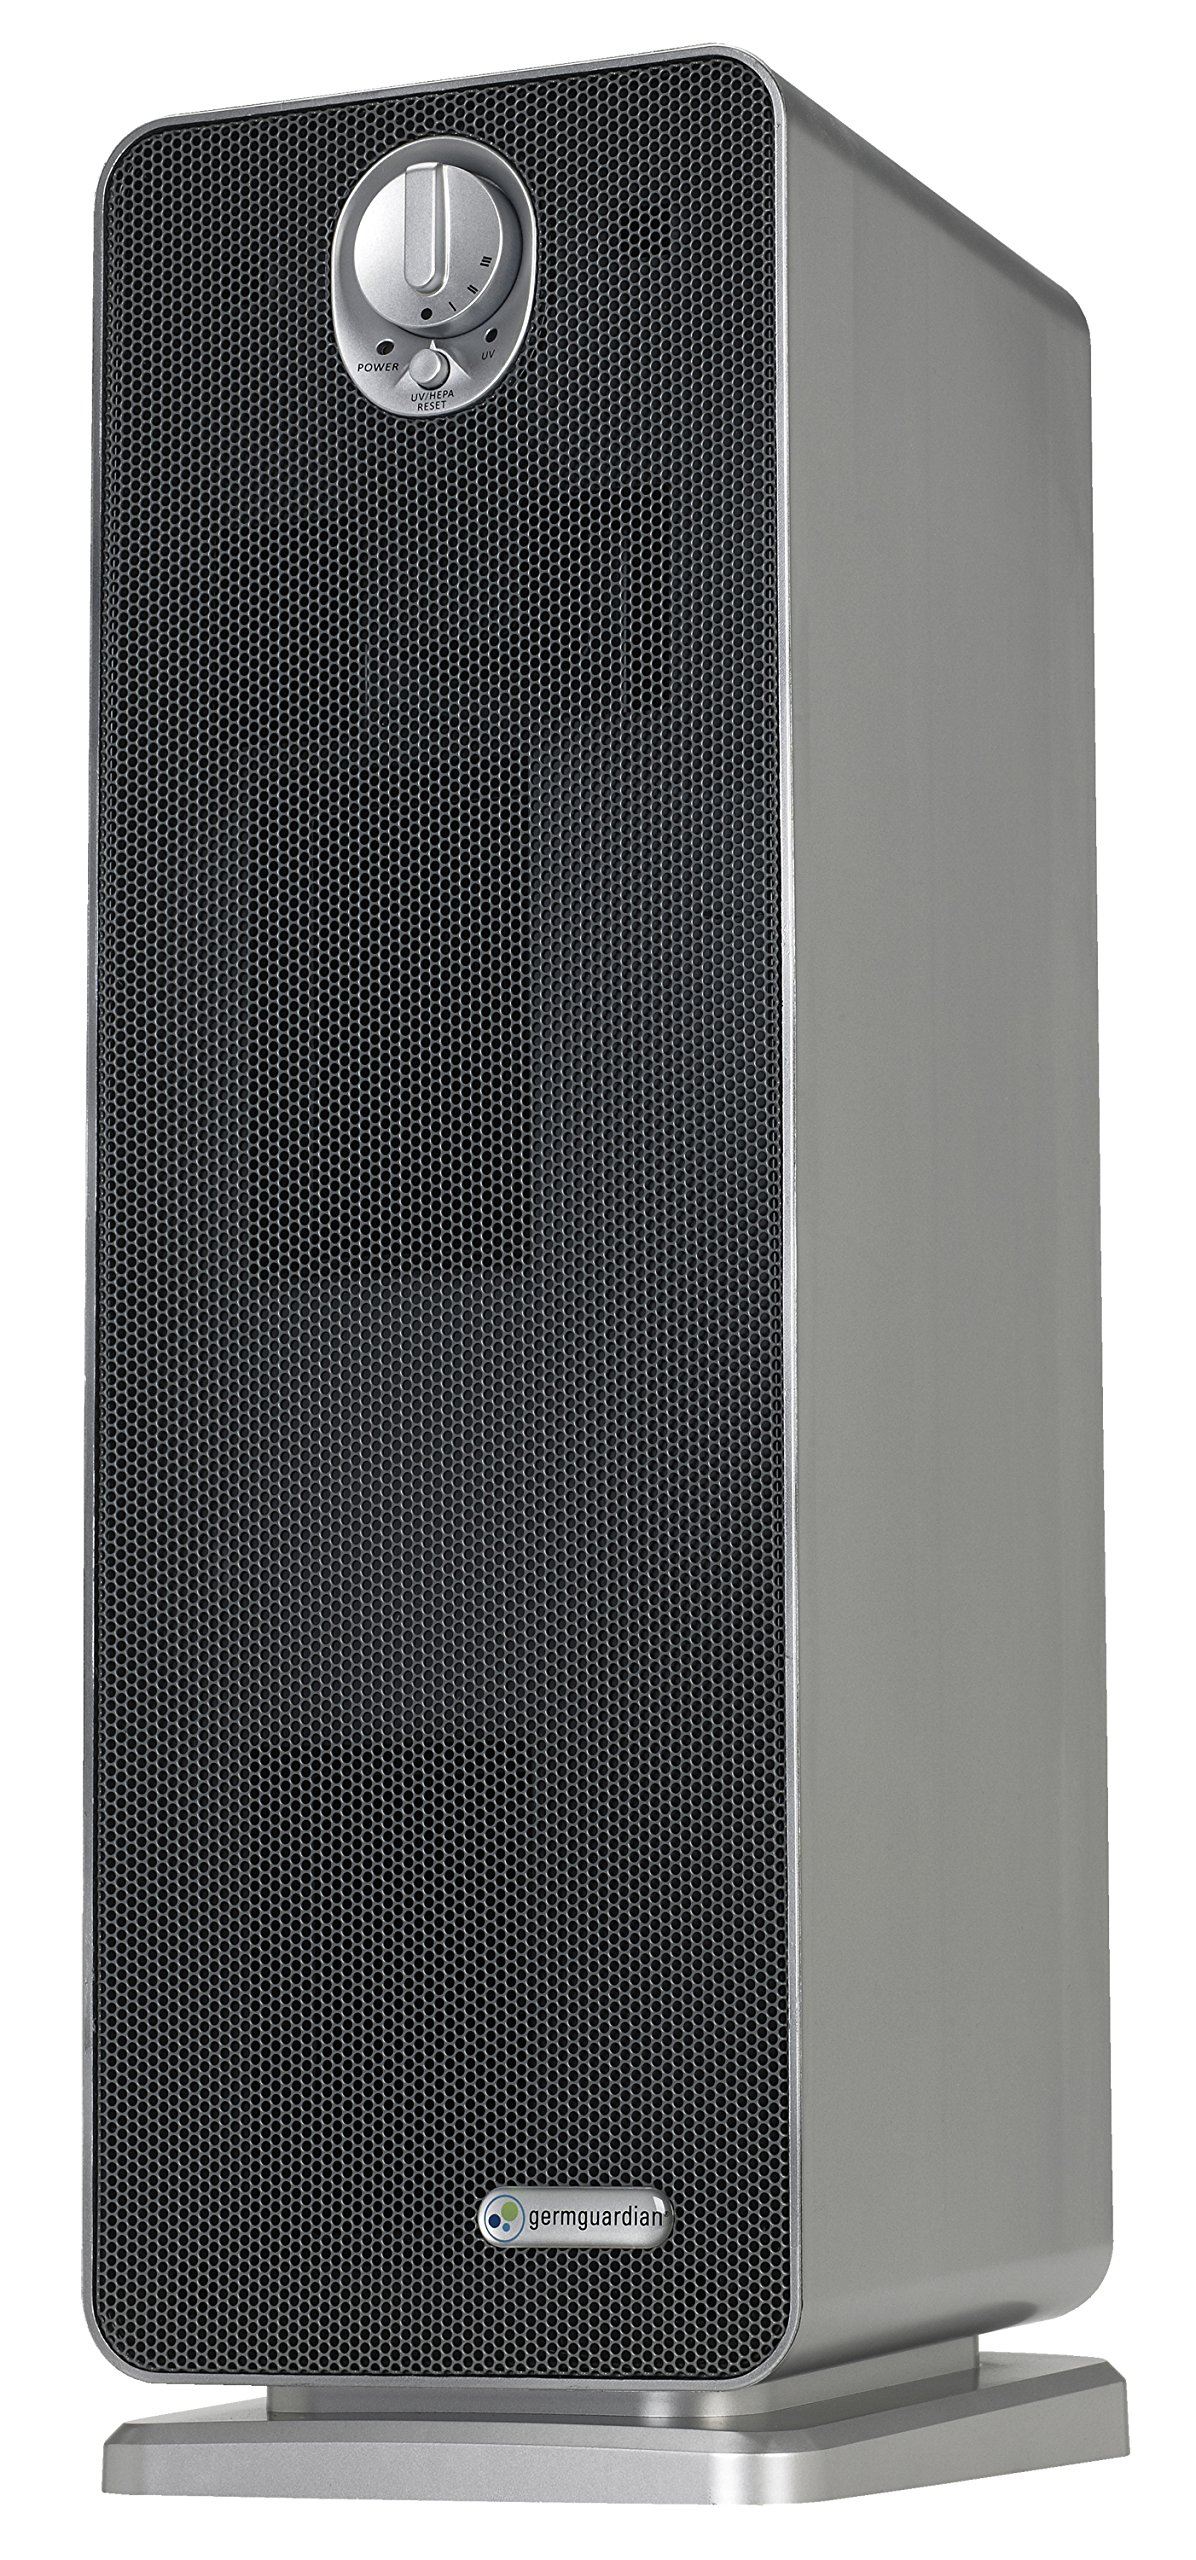 """GermGuardian AC4900CA 22"""" 3-in-1 Full Room Air Purifier, HEPA Filter, UVC Sanitizer, Home Air Cleaner Traps Allergens for Smoke, Odors,Mold, Dust, Germs, Smokers, Pet Dander, Energy Star Germ Guardian"""